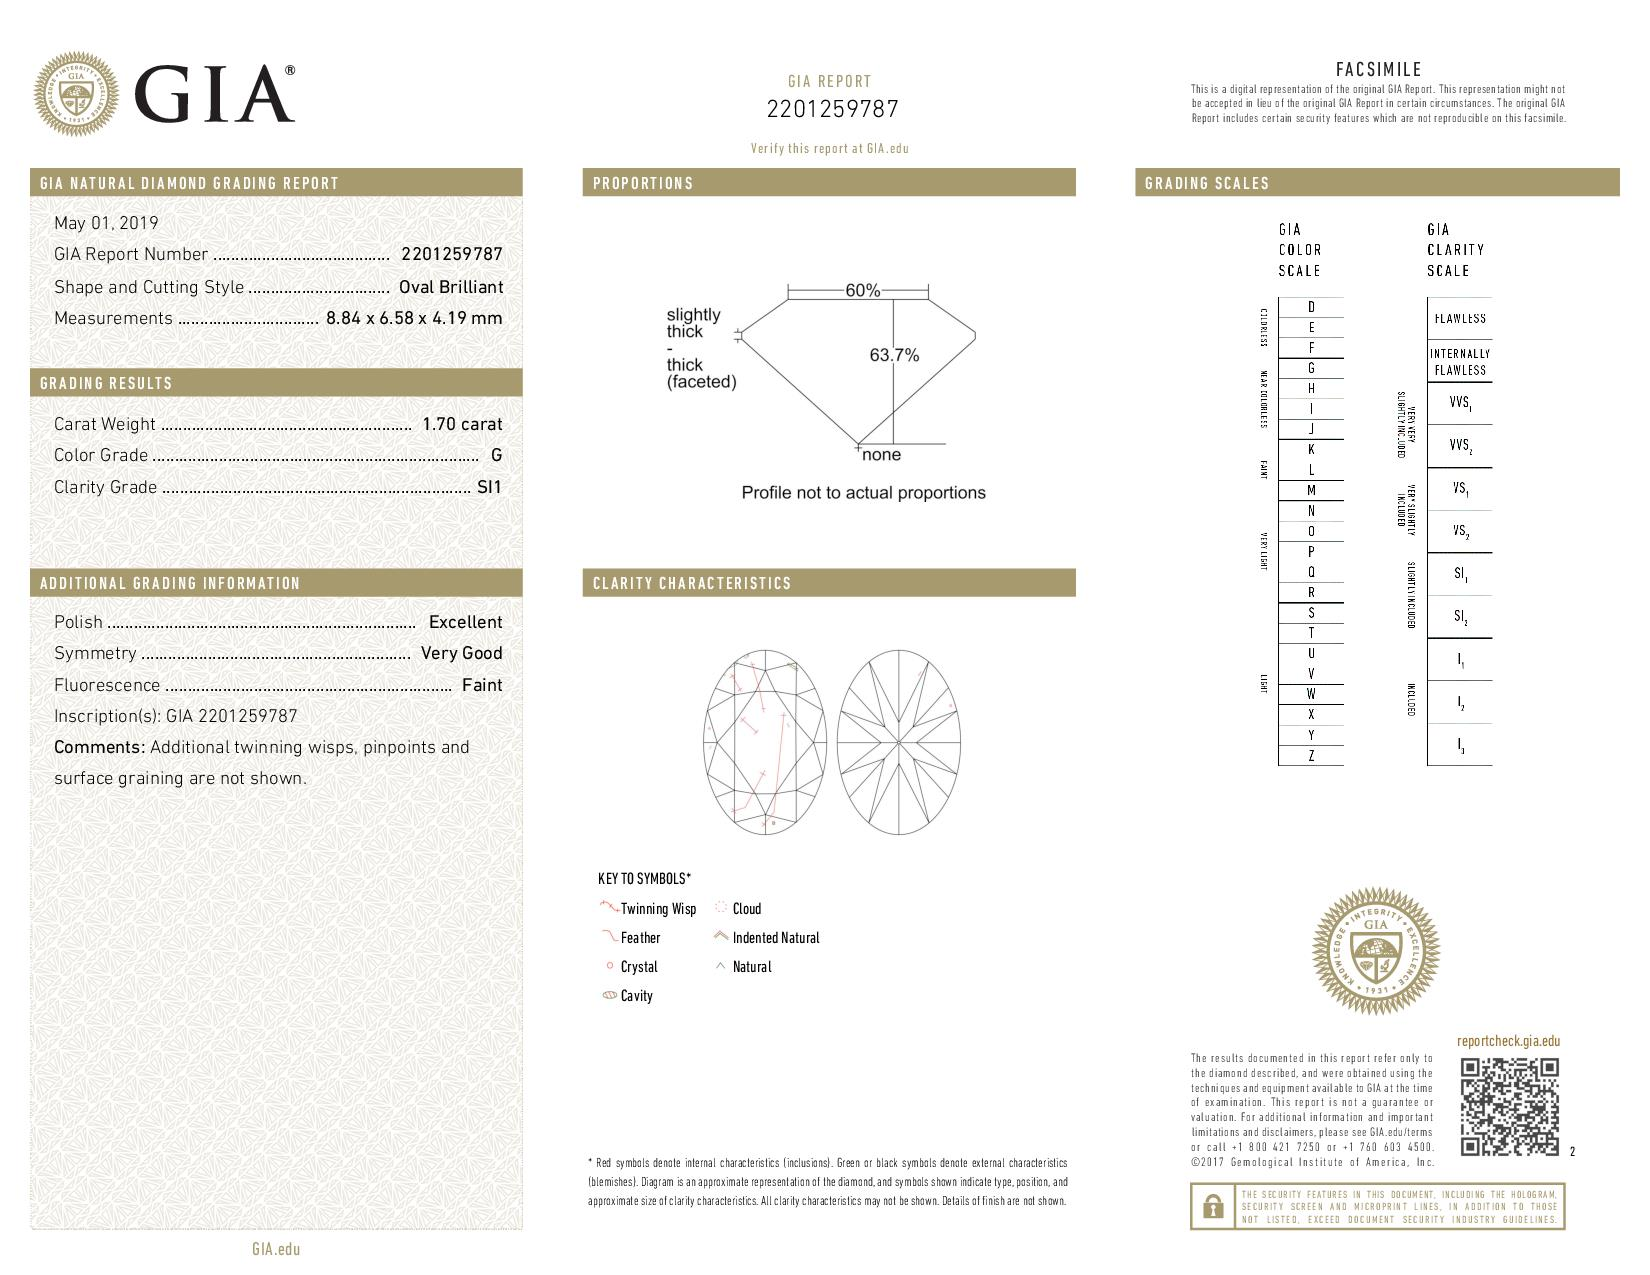 This is a 1.70 carat oval shape, G color, SI1 clarity natural diamond accompanied by a GIA grading report.